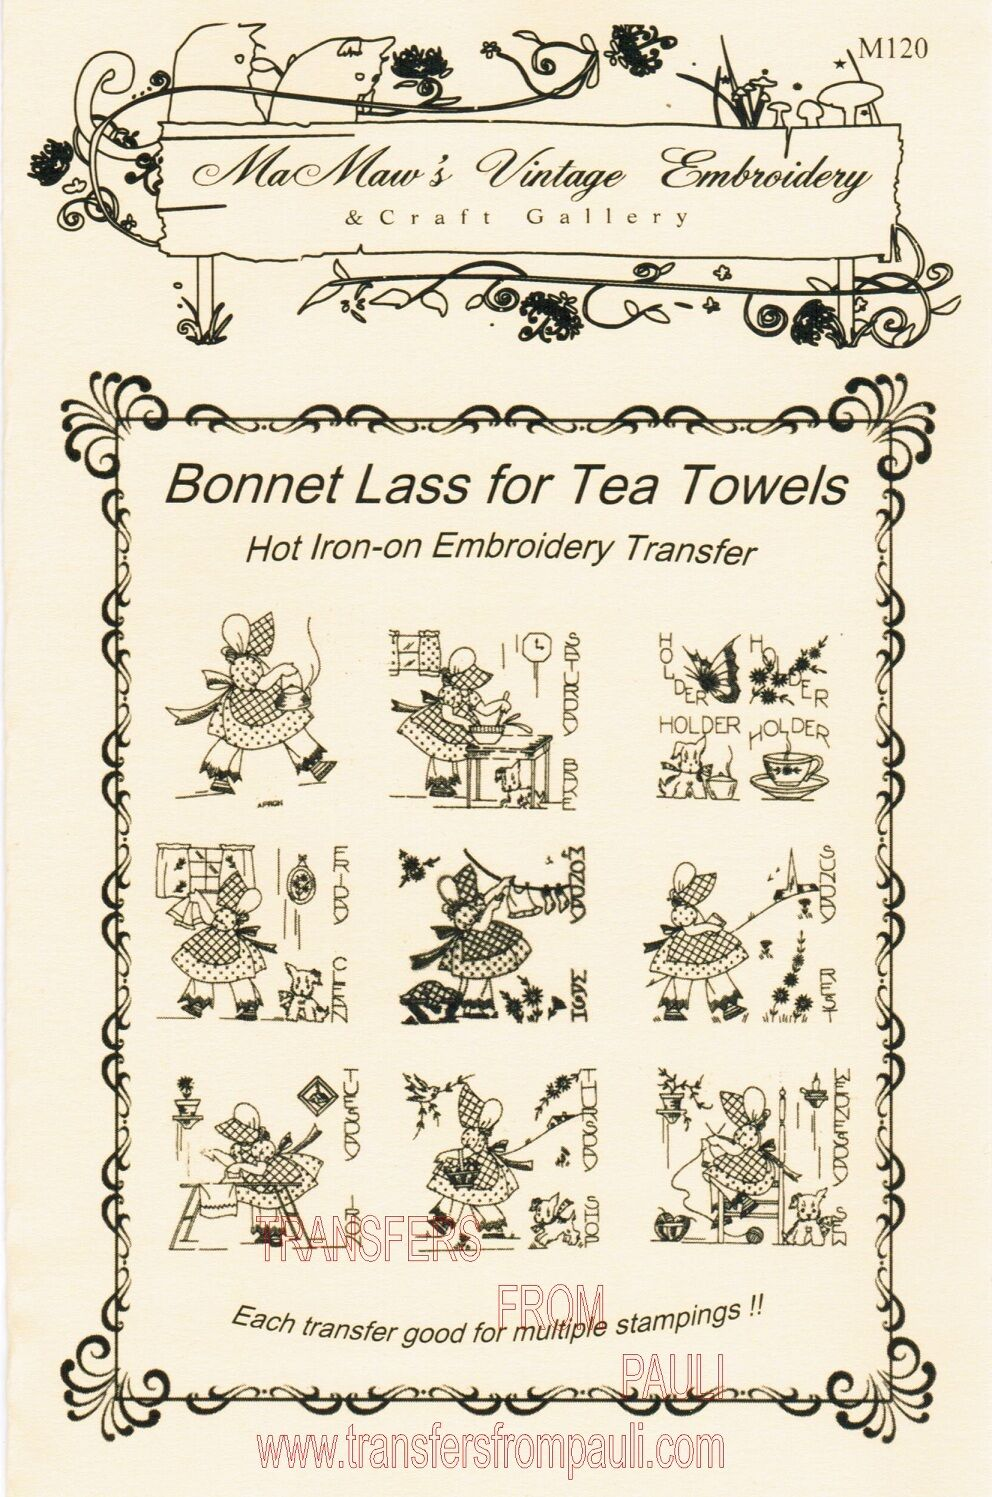 Details about Bonnet Lass DOW for Tea Towels Hot Iron Transfers by MaMaw's  Vintage Embroidery